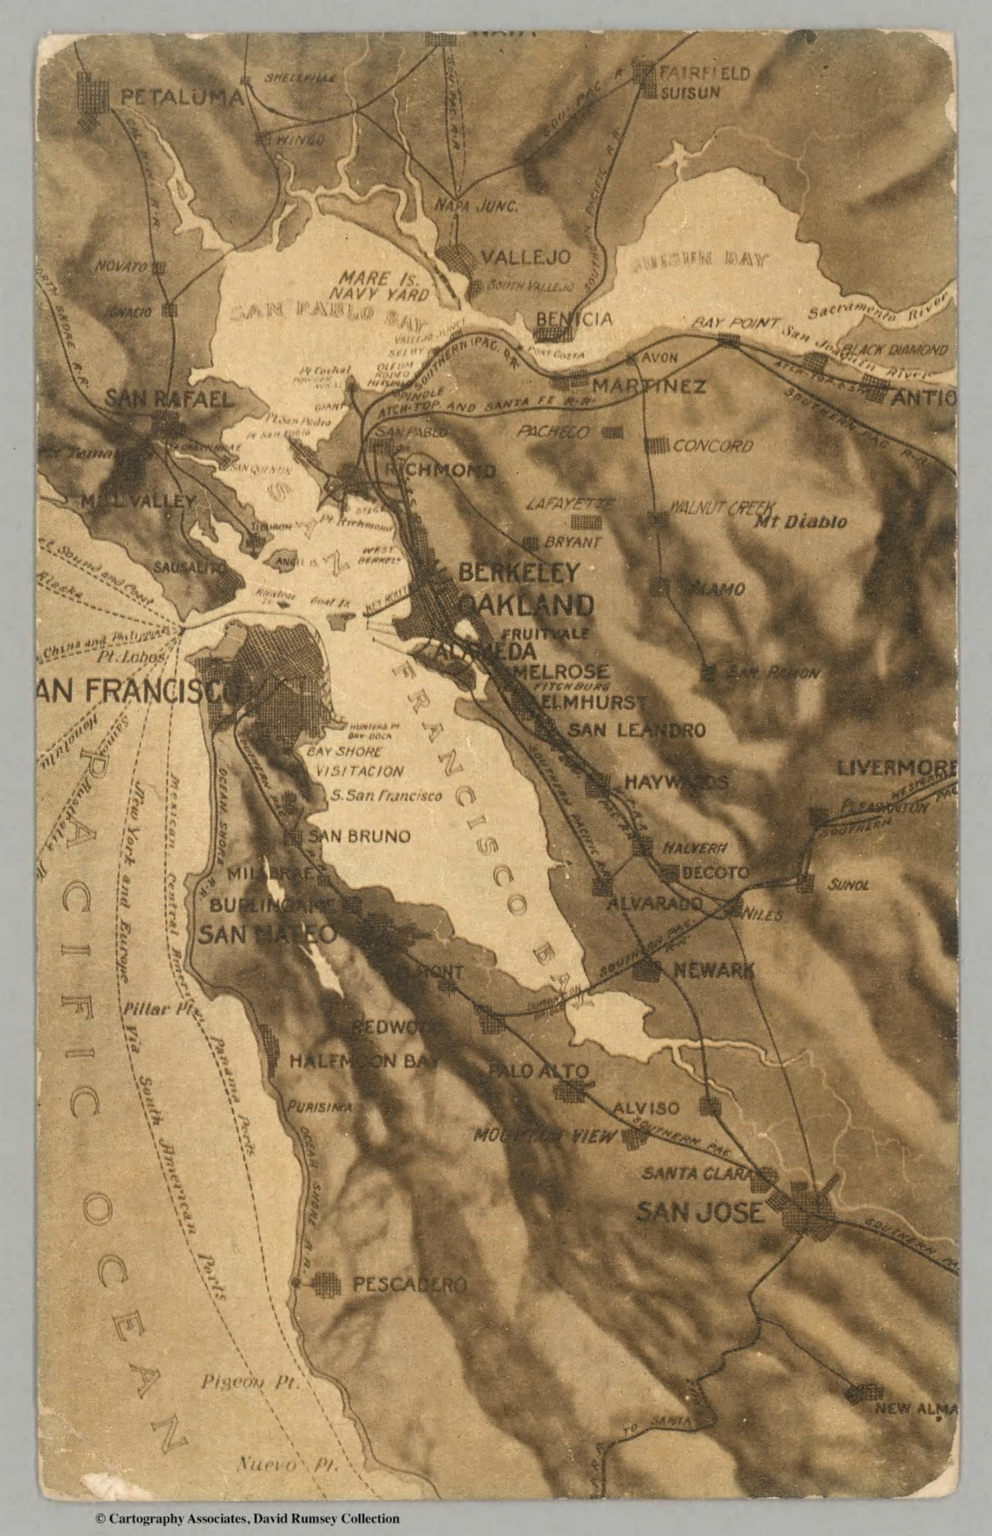 San Francisco Bay Area David Rumsey Historical Map Collection